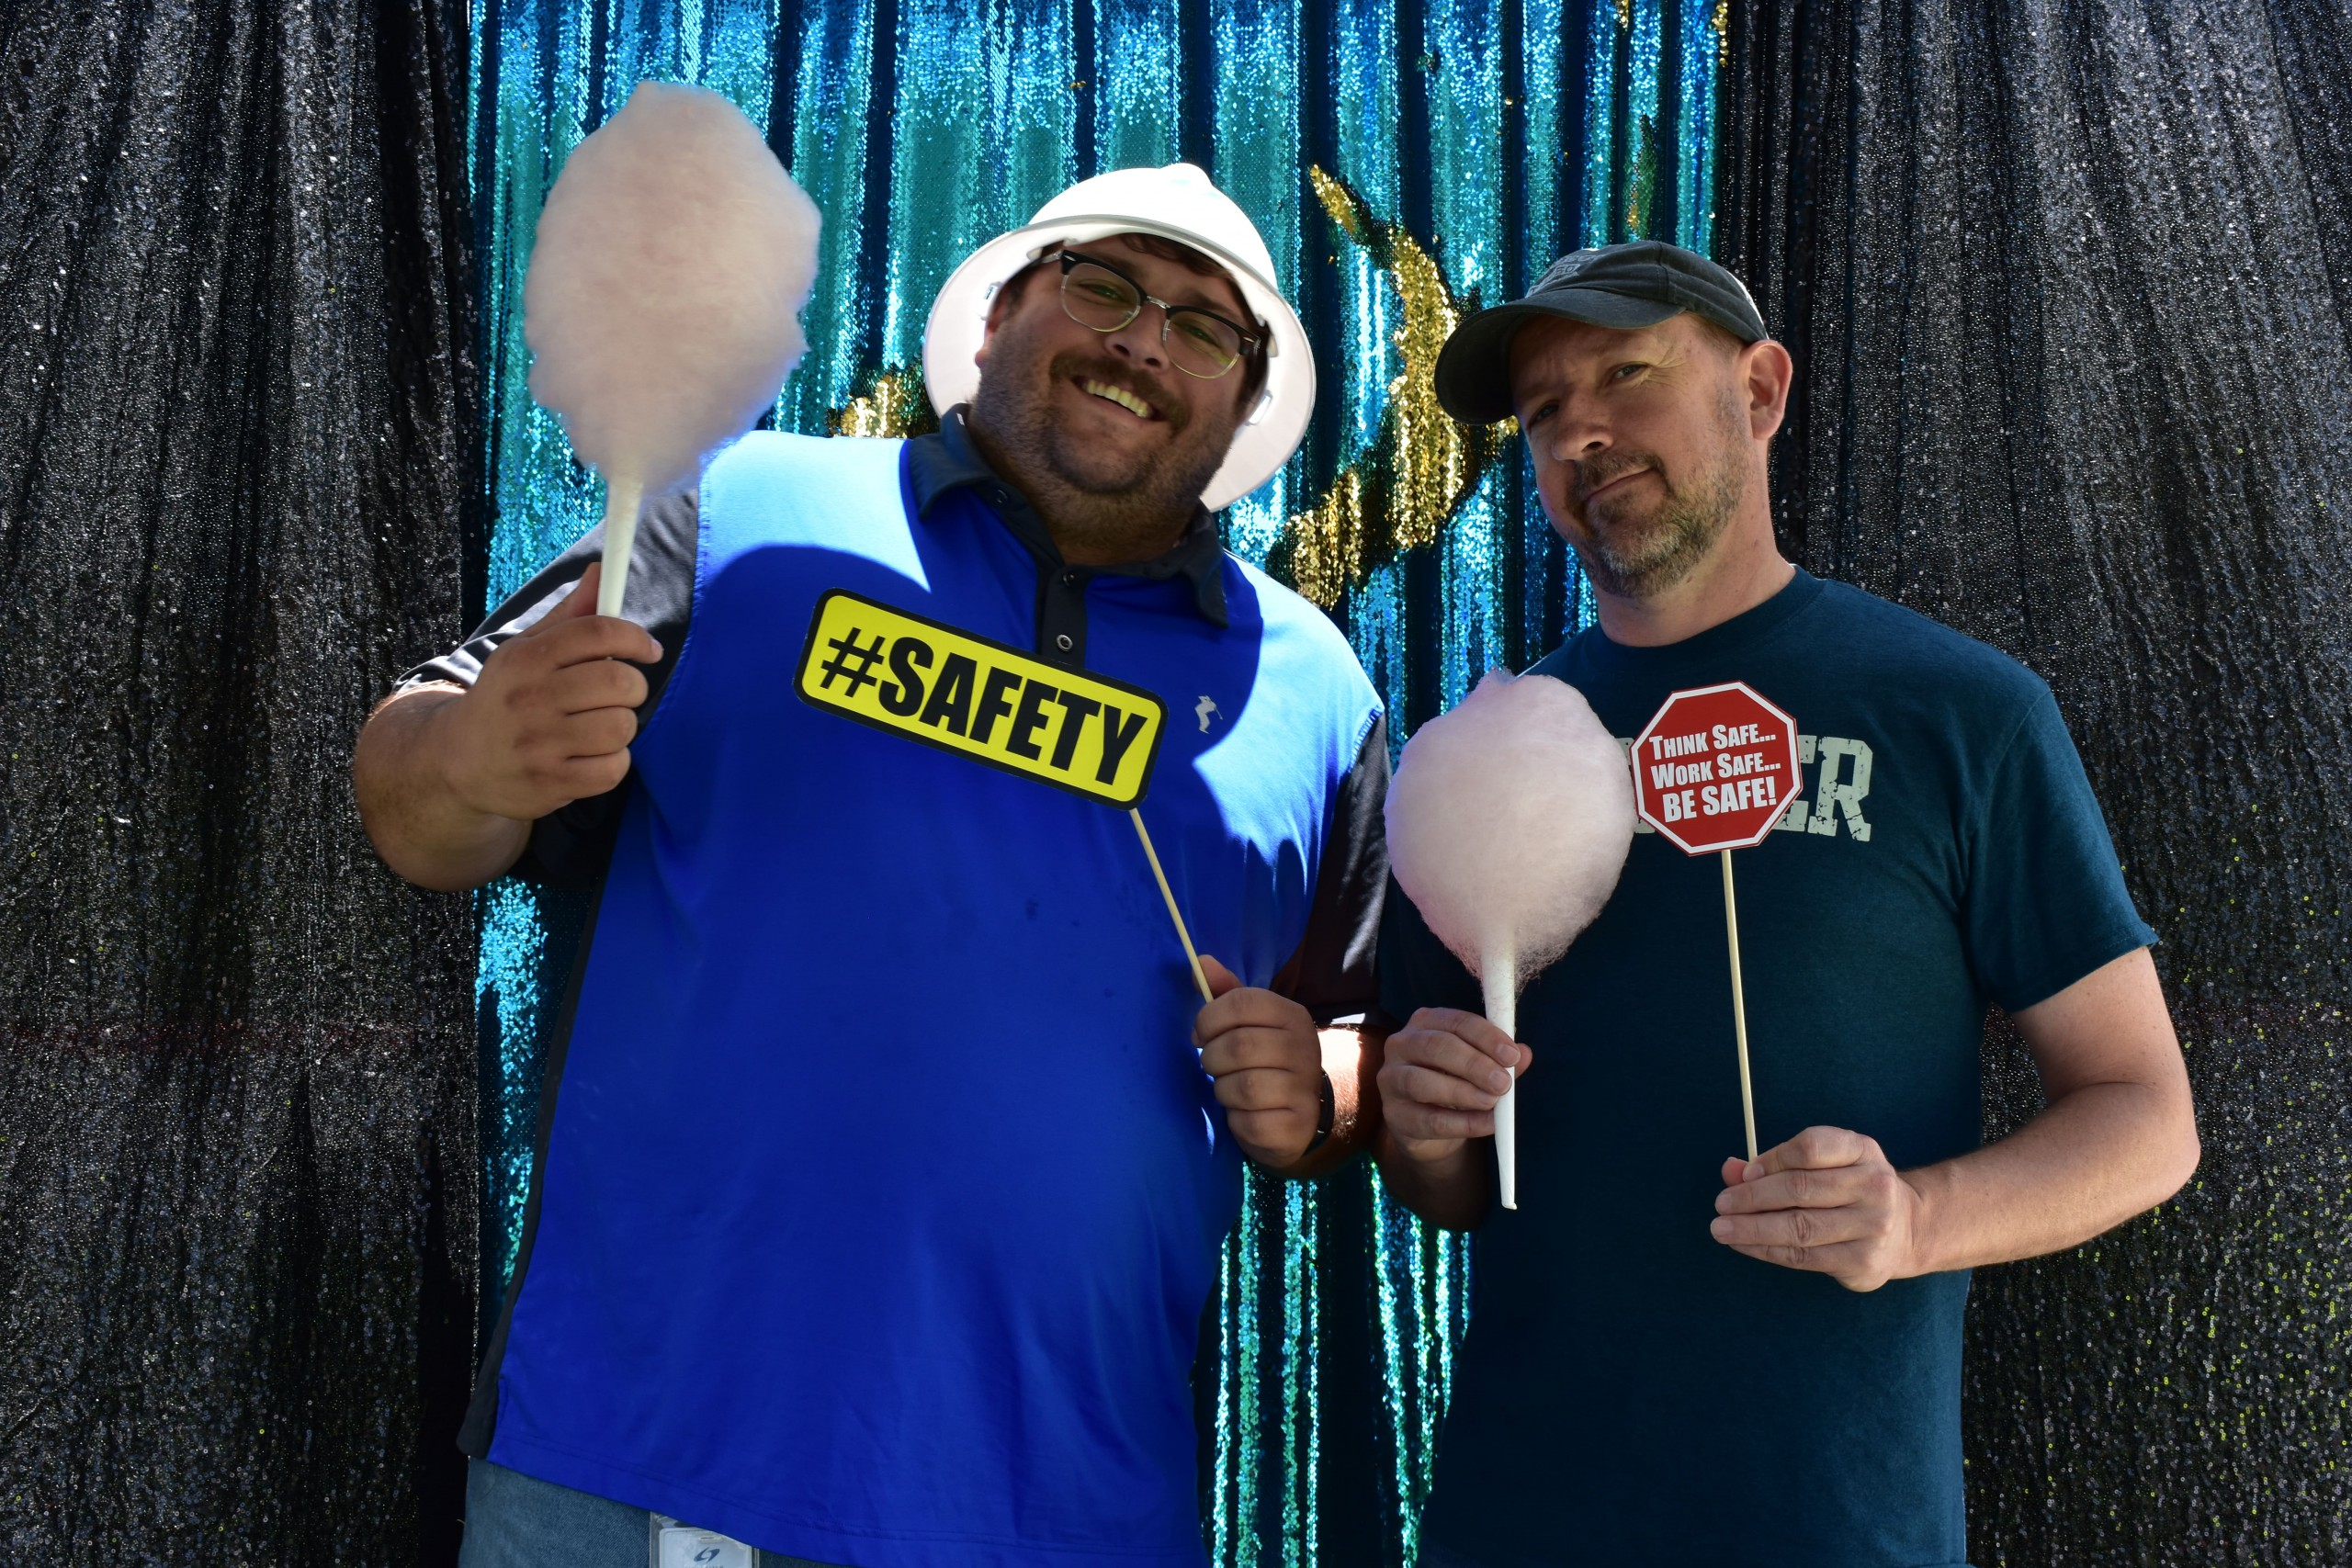 Enjoying cotton candy and safety appreciation at the safety picture booth